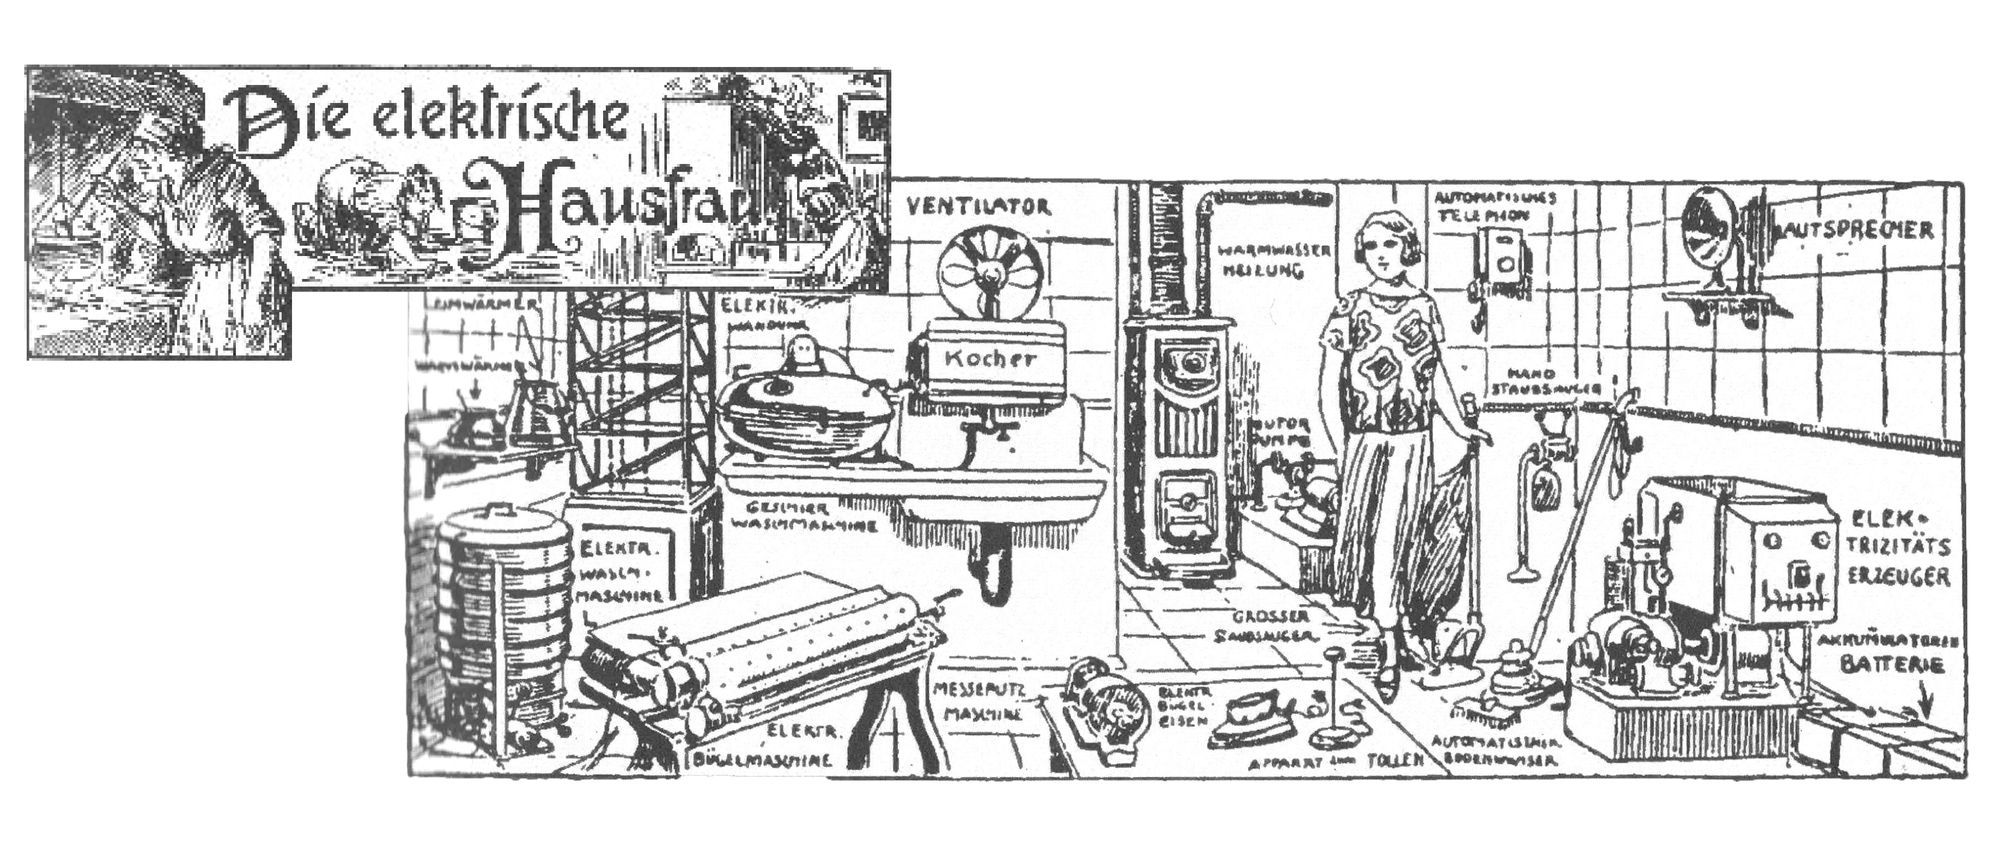 """On the left: the lettering """"the electrical housewife"""" surrounded by drawings of a woman in an apron and headscarf cooking on an open stove and scrubbing the floor on her knees. On the right: A drawing of a well-equipped kitchen with all imaginable household appliances. In the centre of the picture is a woman dressed in the modern style of the 1920s."""